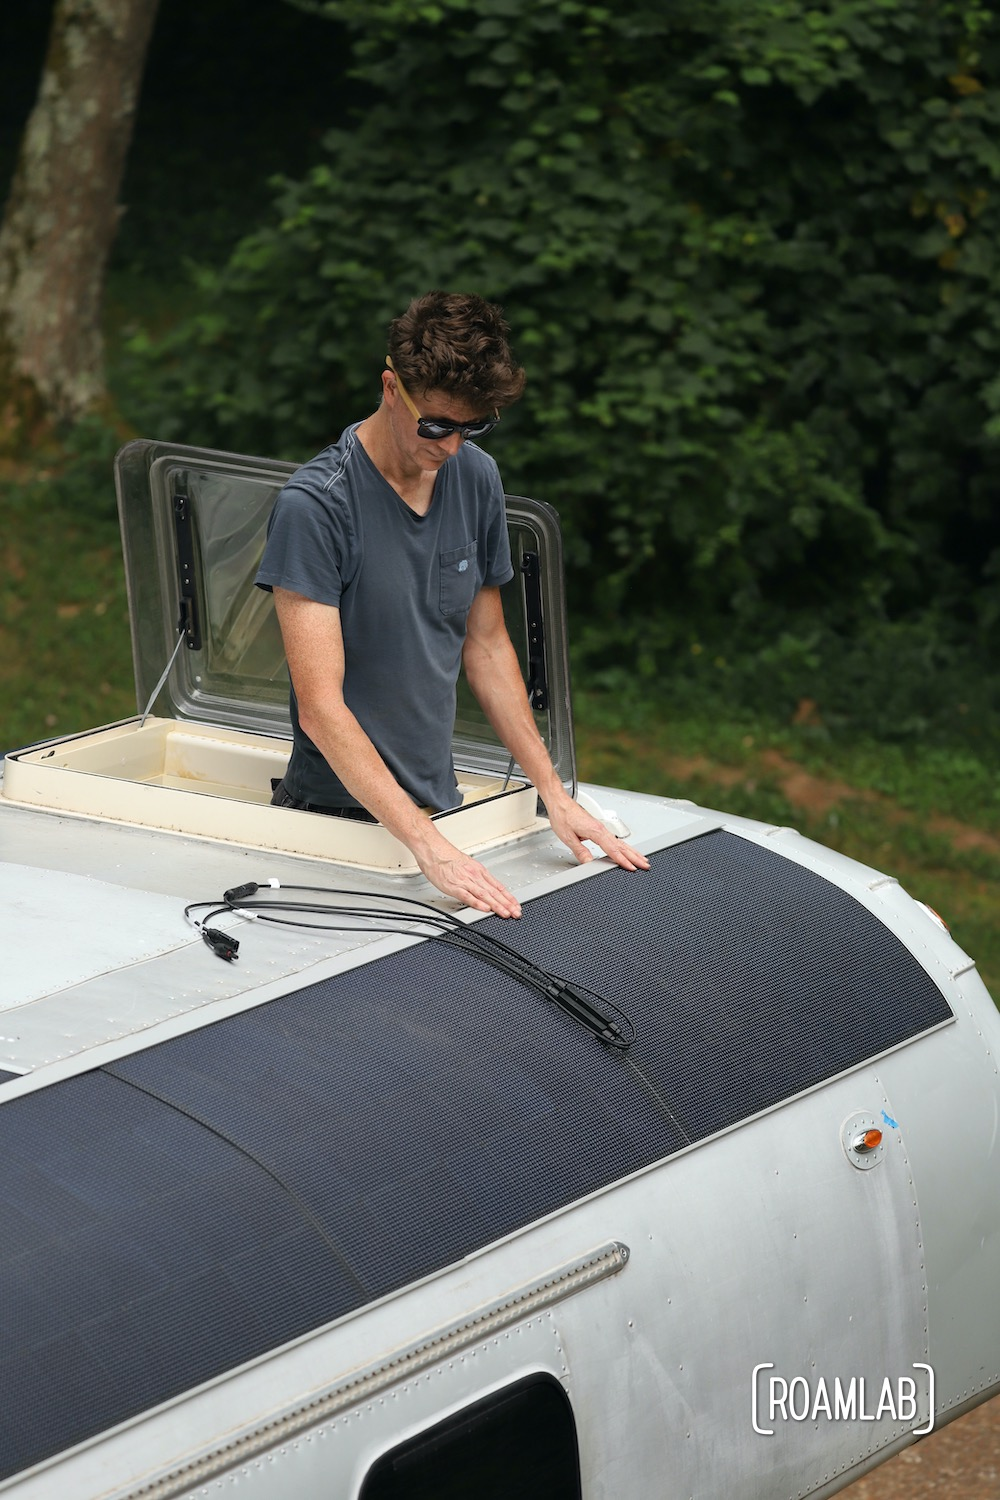 Test fitting solar panels on a 1970 Avion C11 truck camper roof.